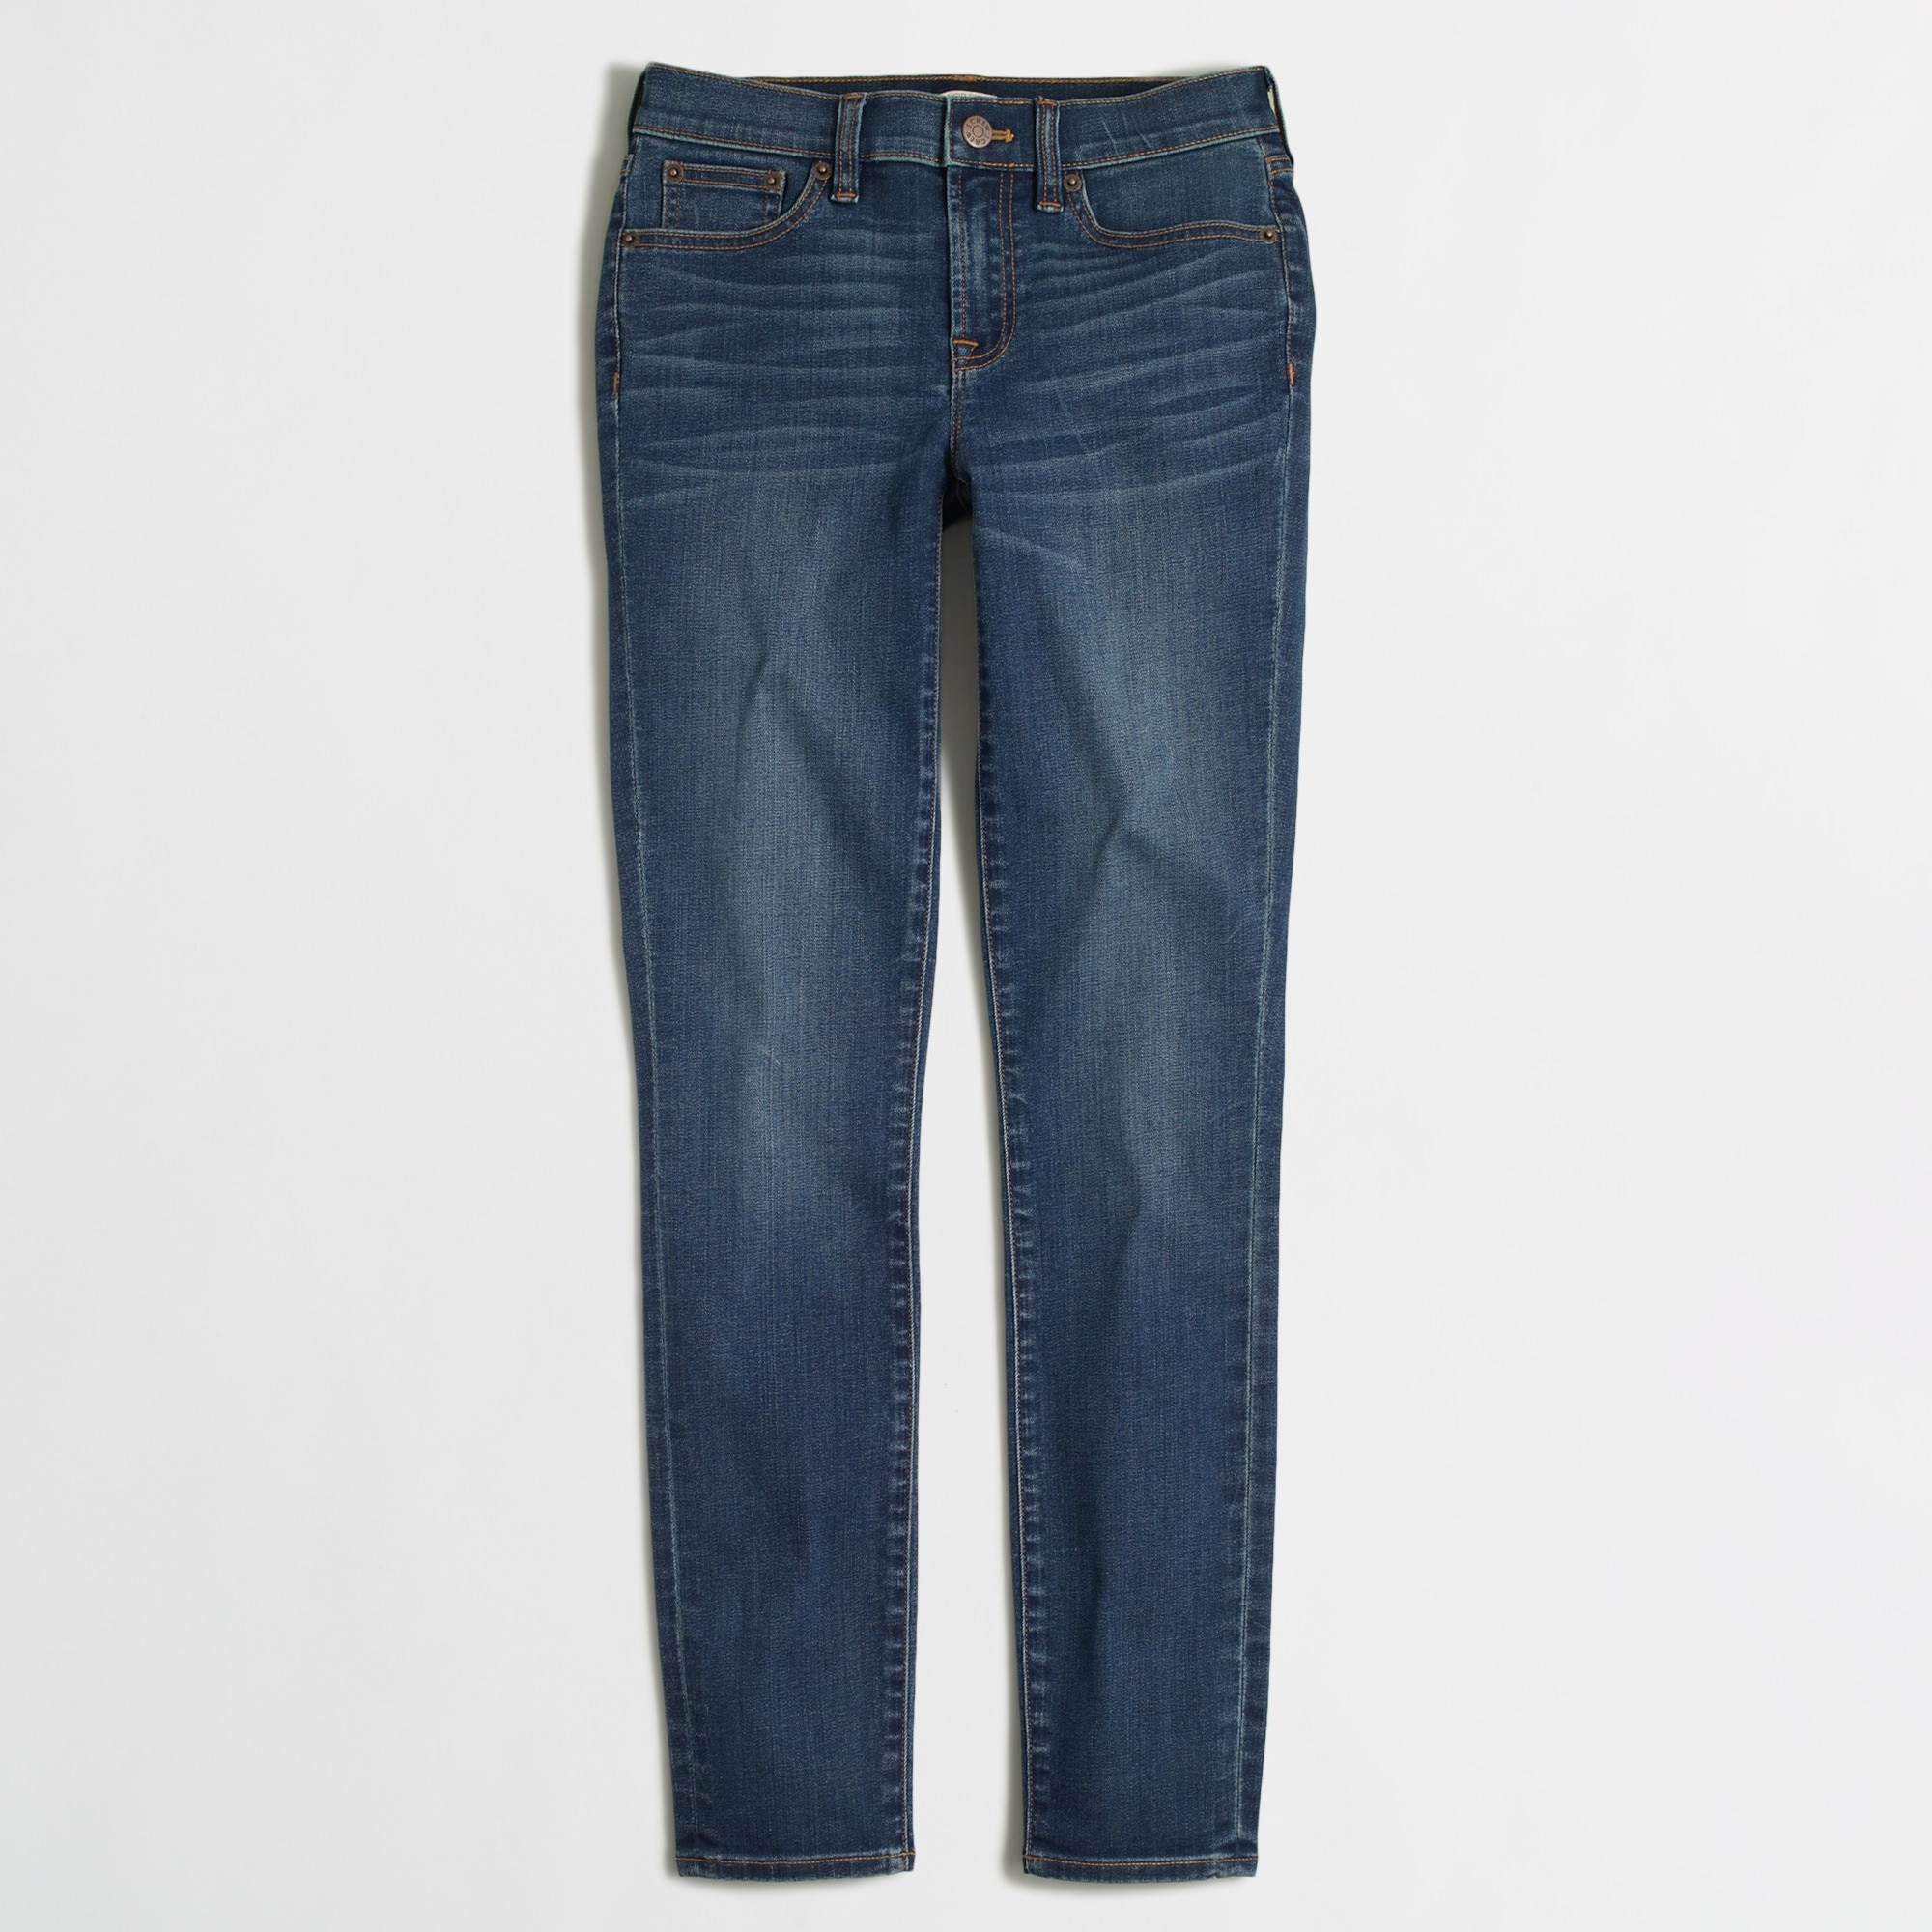 "Medium Miller wash skinny jean with 28"" inseam"